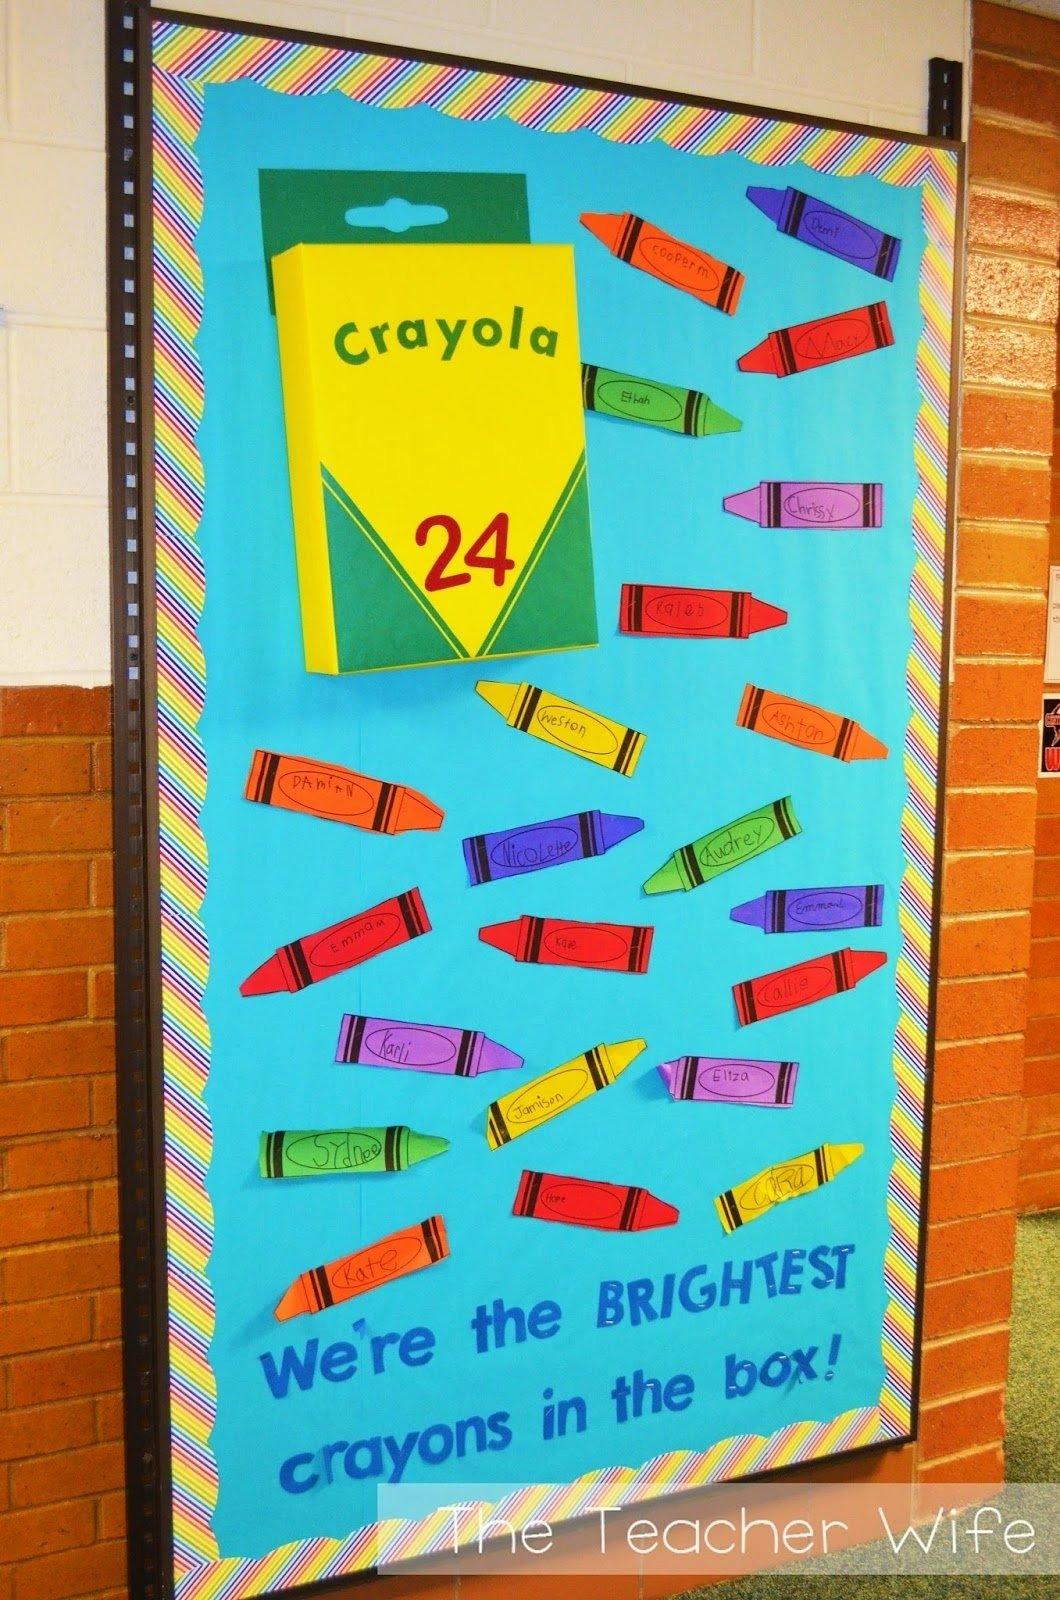 10 Fantastic First Day Of School Bulletin Board Ideas classroom door decor ideas classroom door doors and bulletin board 3 2020